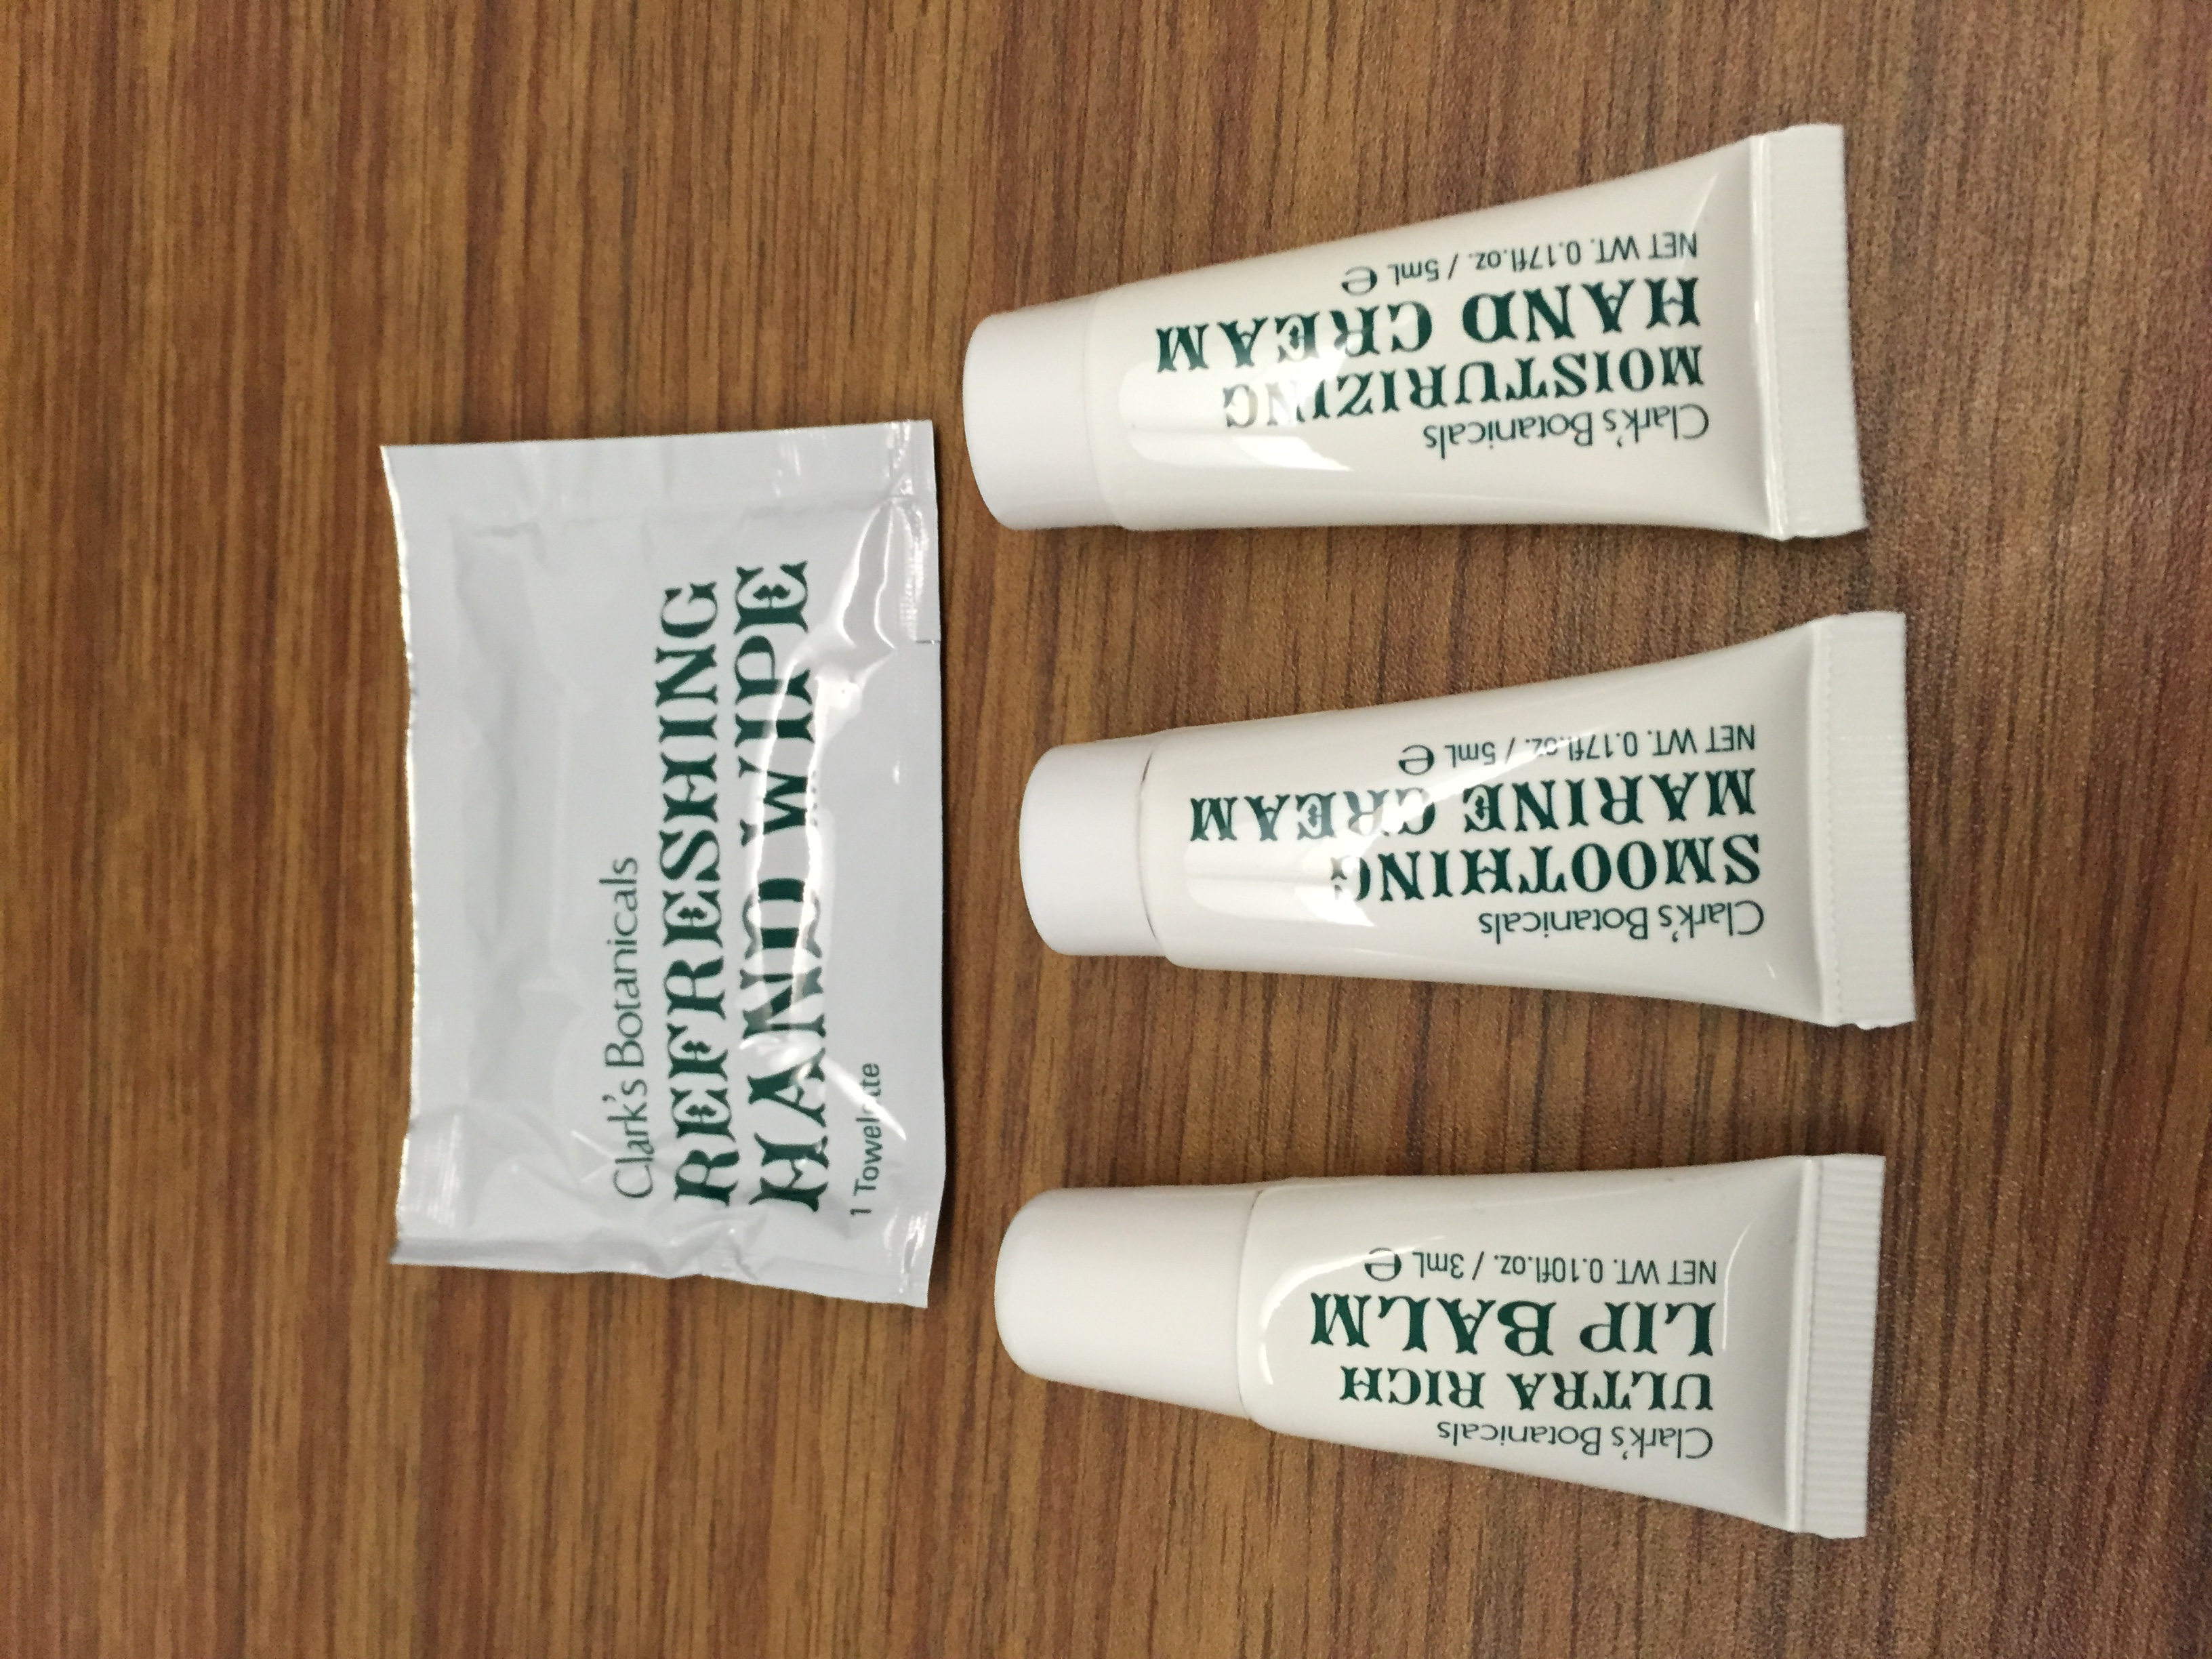 American A321 First Class Amenity Kit Review: Clark's Botanicals Moisturizer, Hand Cream and Lip Balm